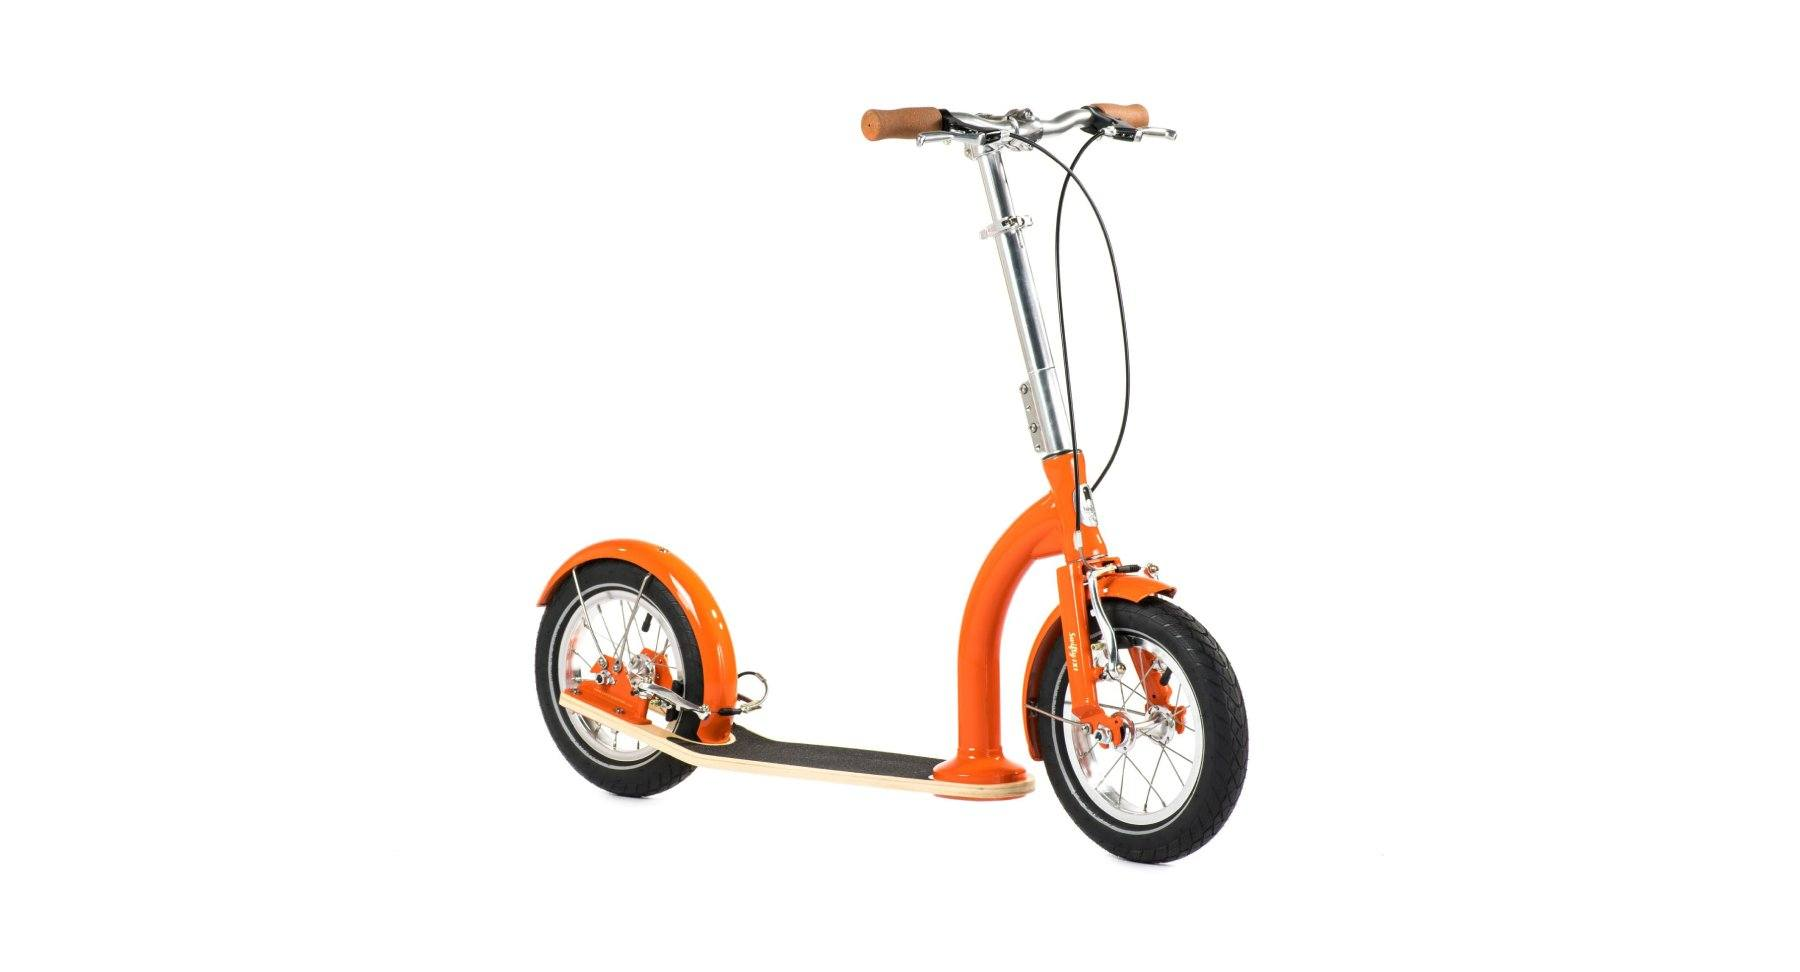 kids scooter, best scooter for kids, girls scooter, boys scooter, scooter with big wheels